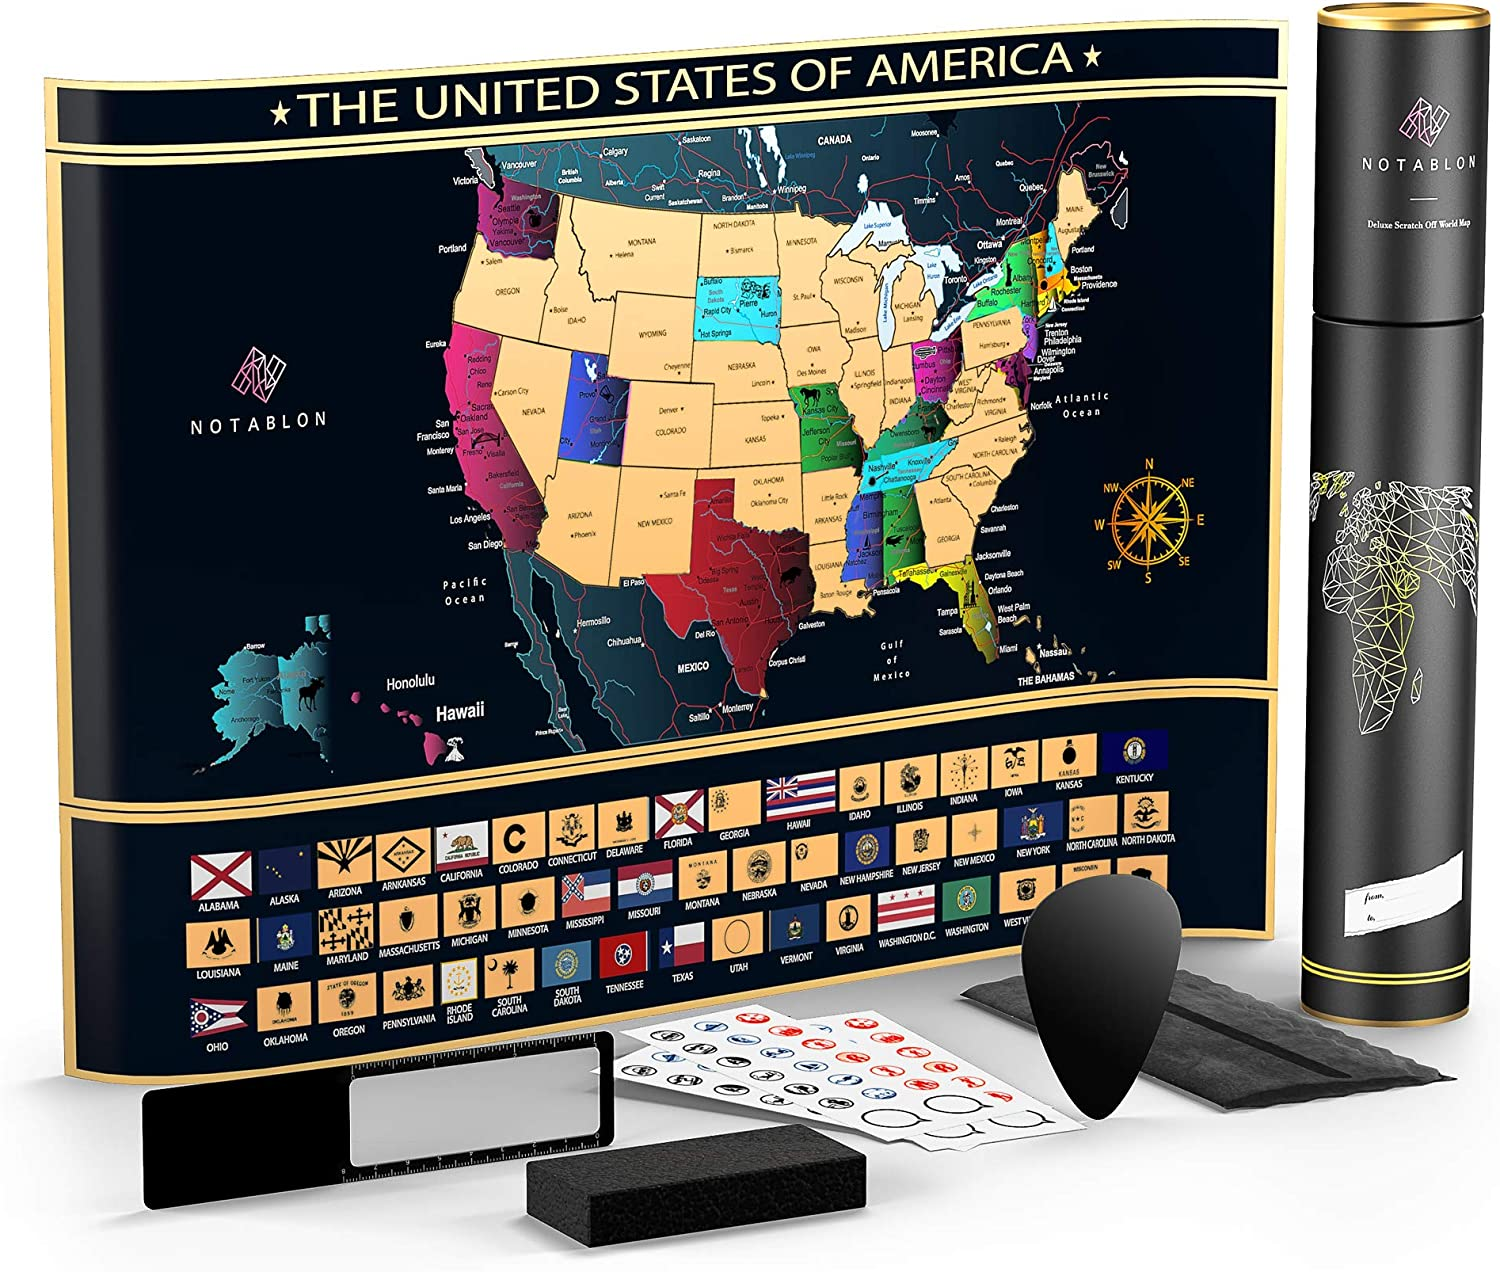 Scratch Off New life Map of The United States - Trave Kansas City Mall Deluxe Personalized